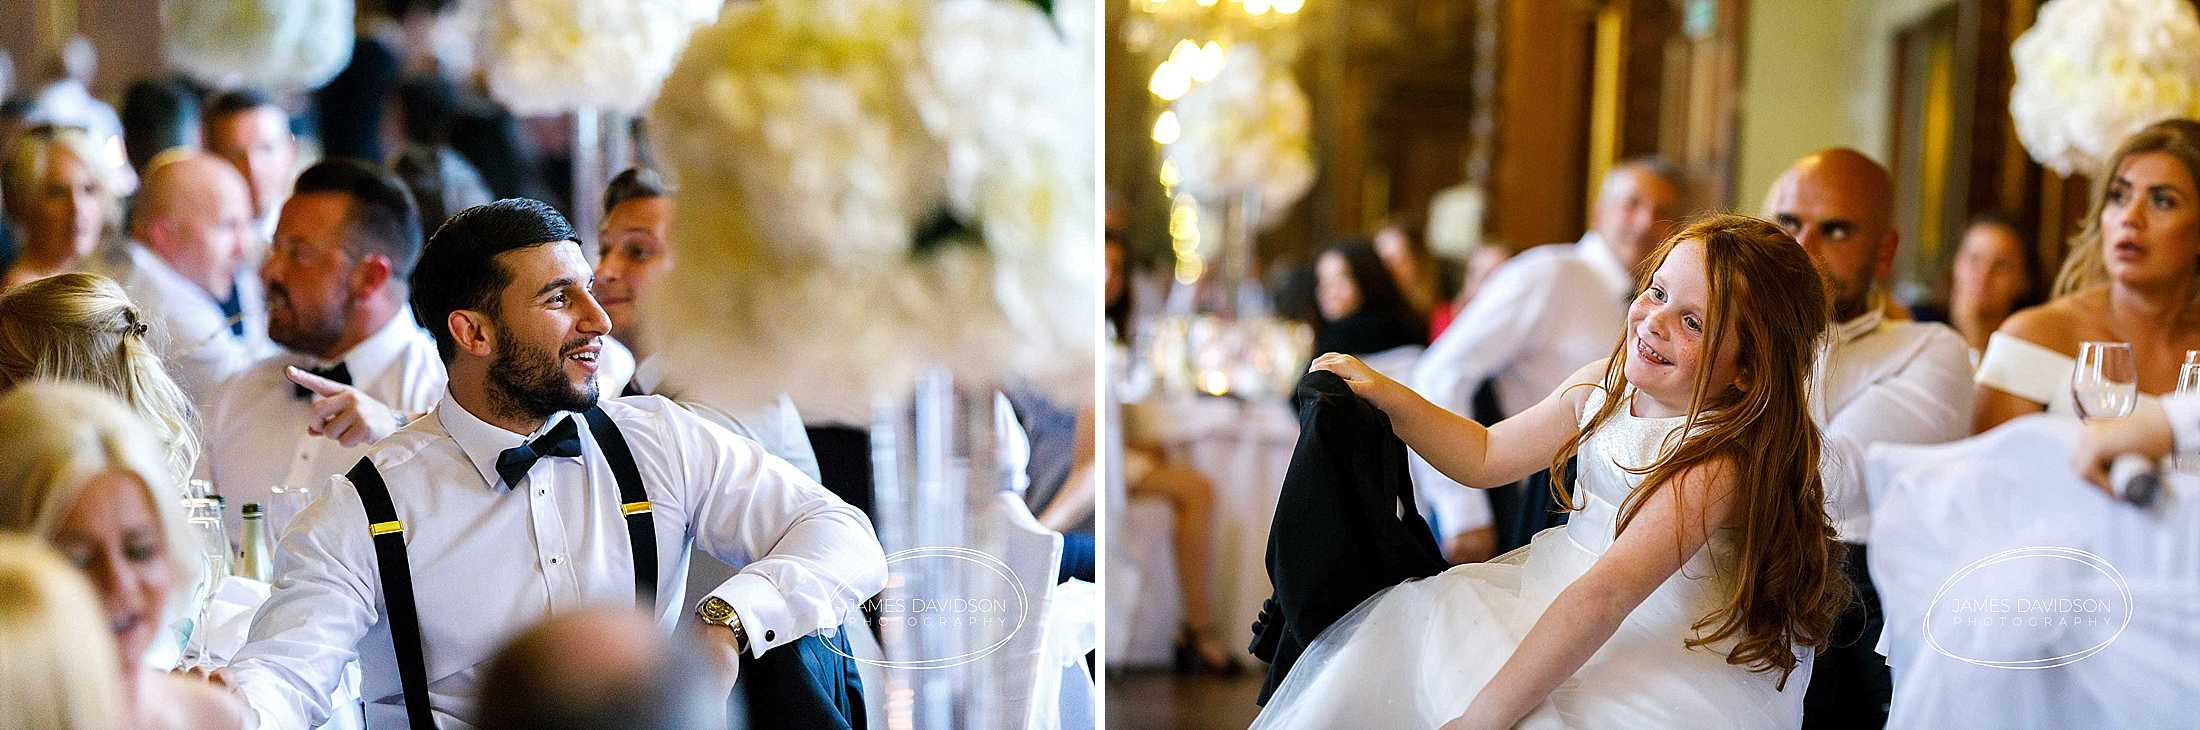 gosfield-hall-wedding-photography-111